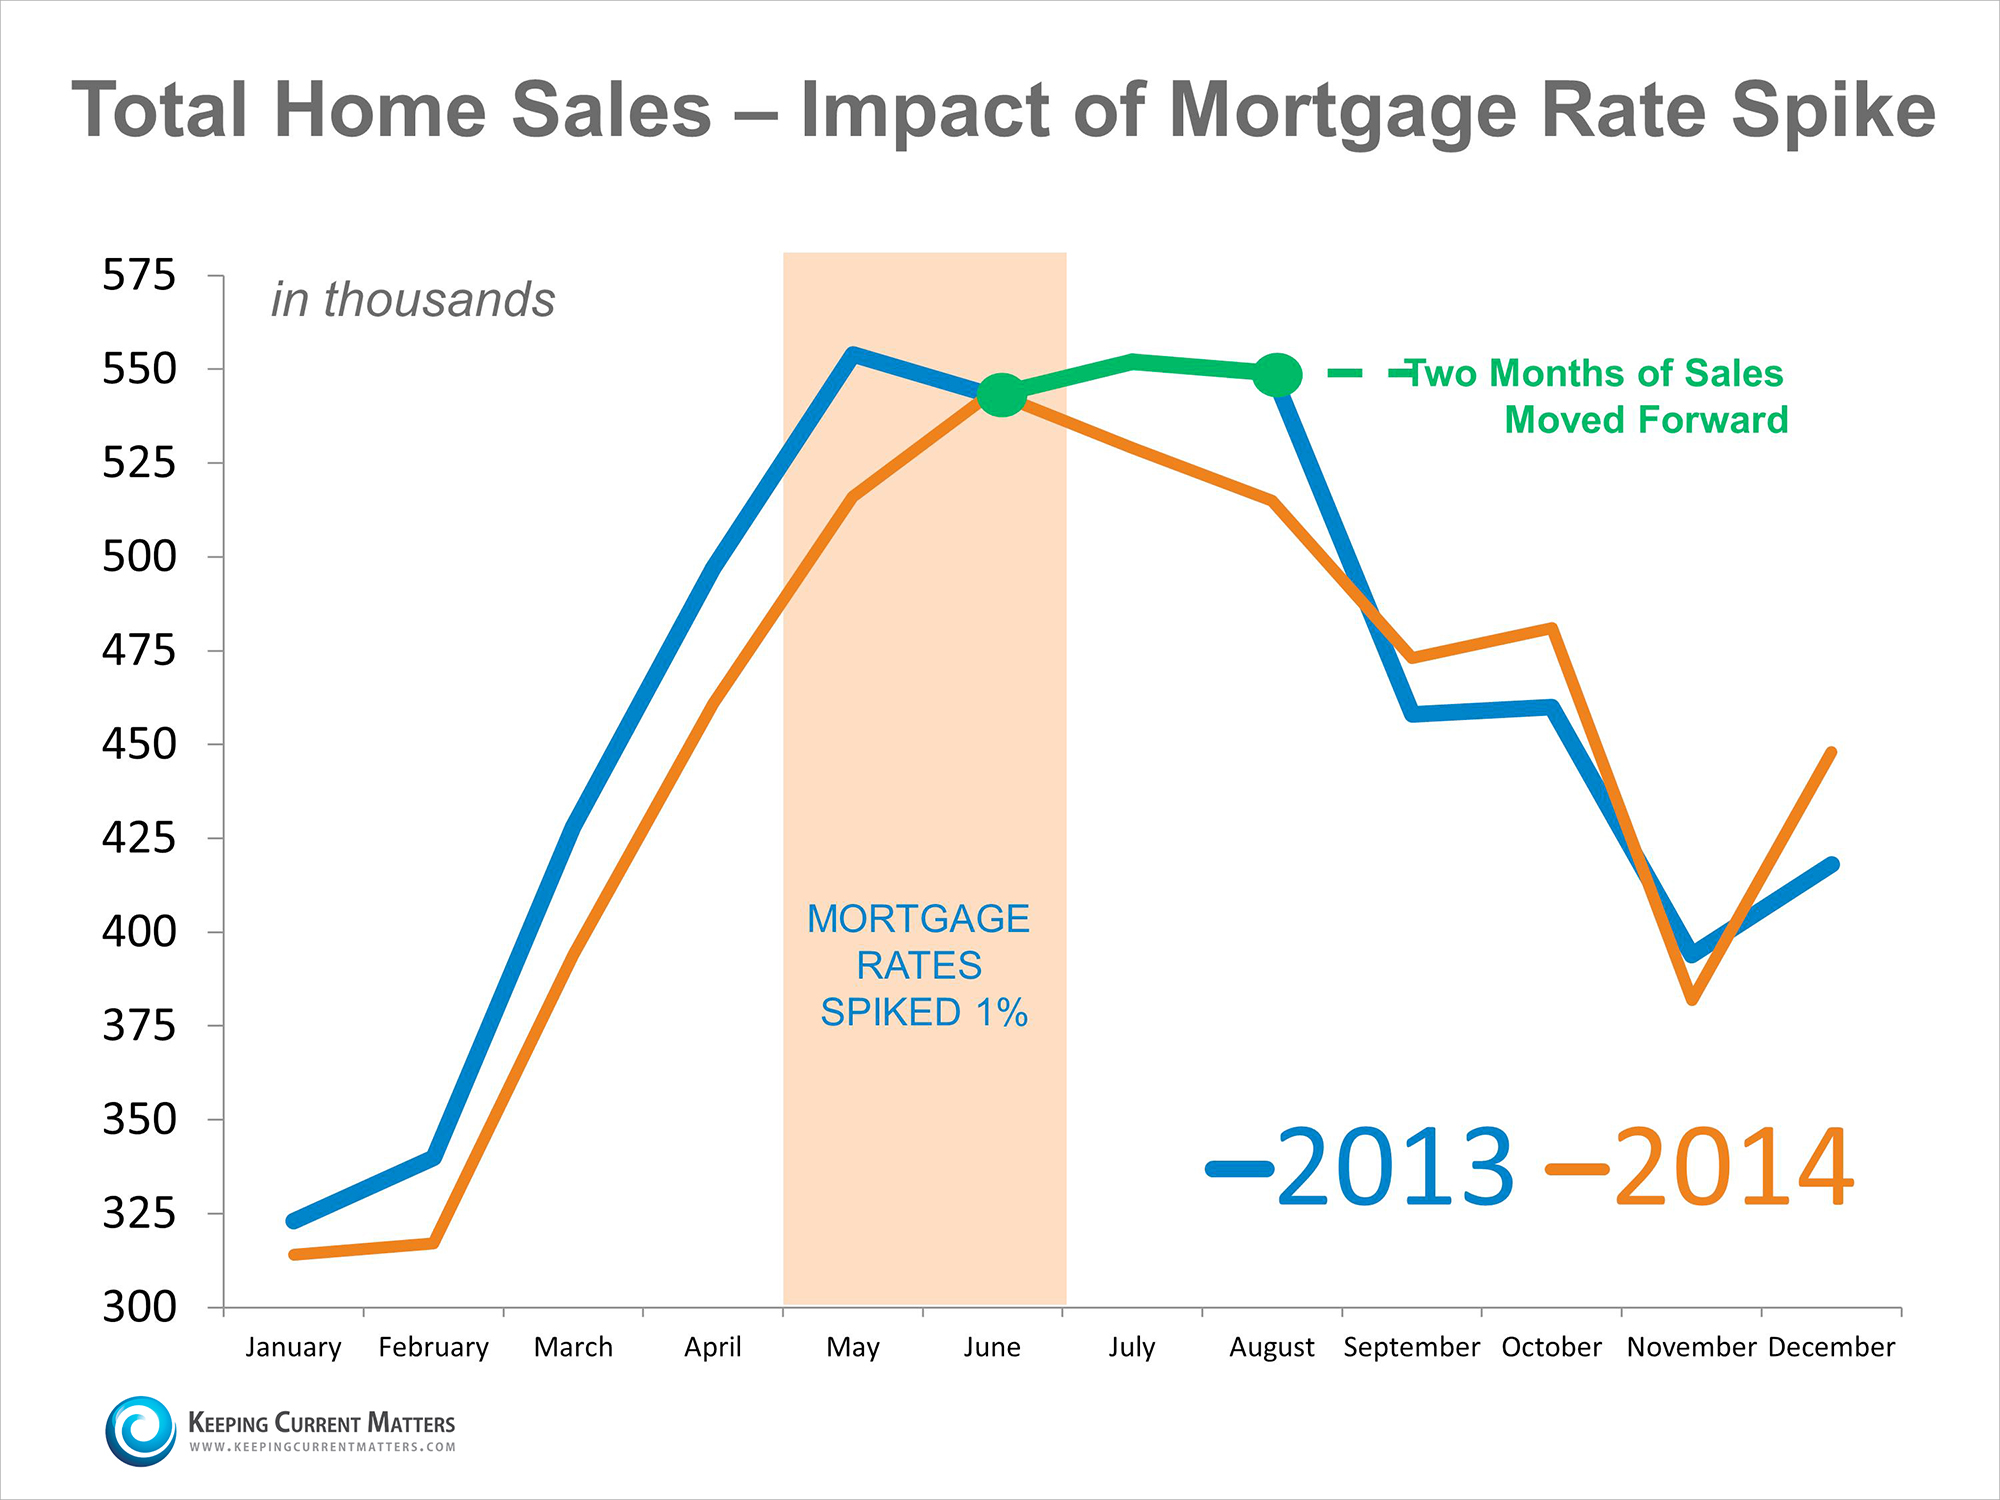 Home Sales & Impact of Mortgage Rate Spike | Keeping Current Matters